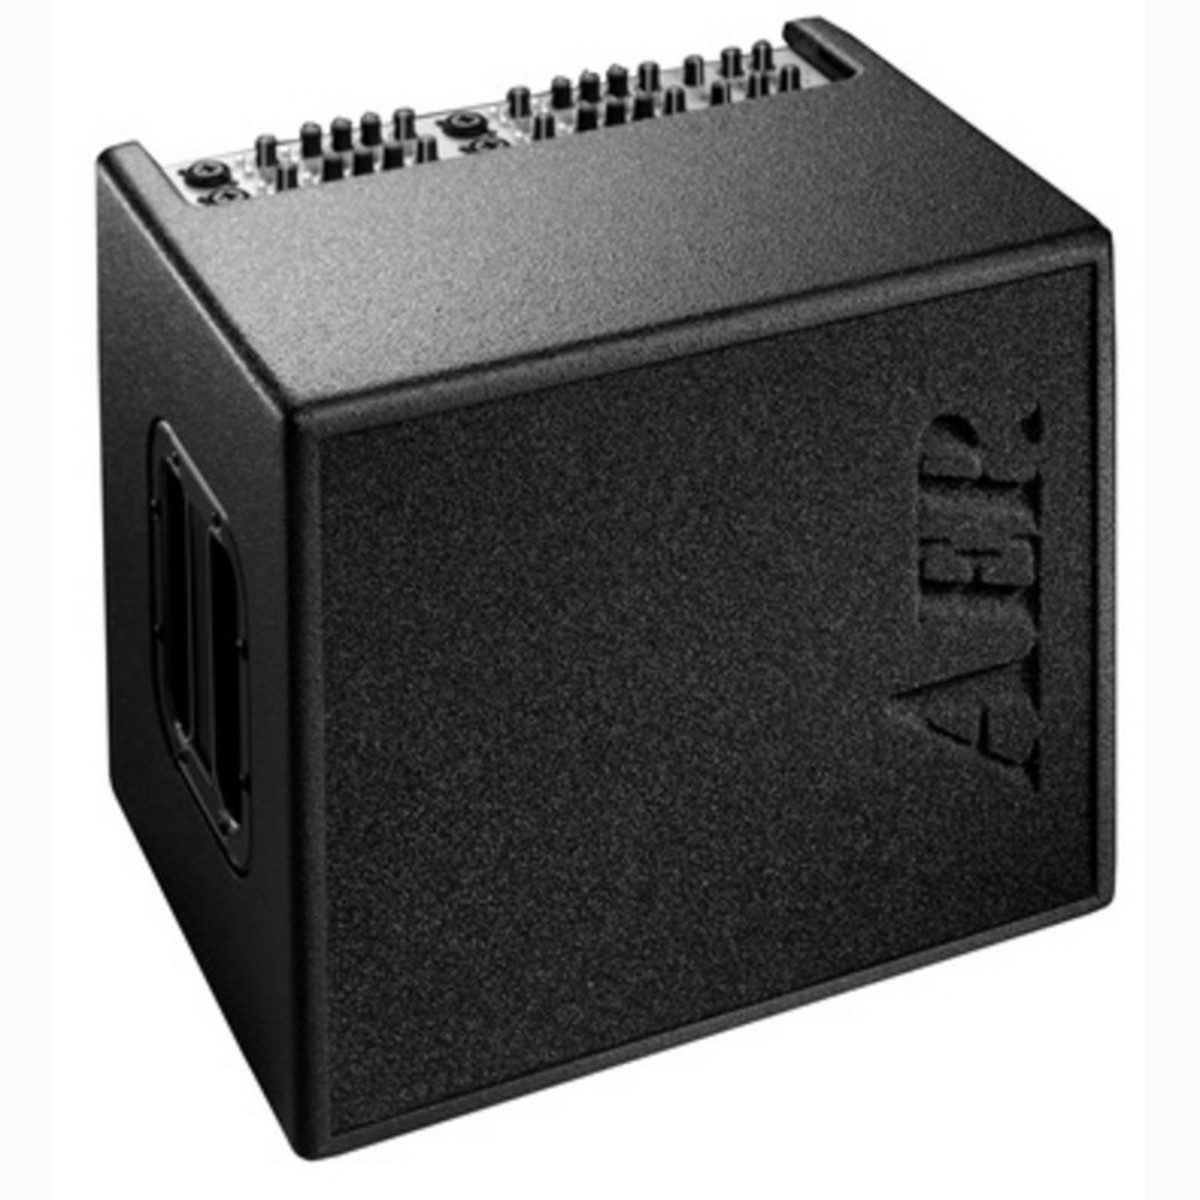 aer domino iii acoustic guitar amp at gear4music. Black Bedroom Furniture Sets. Home Design Ideas